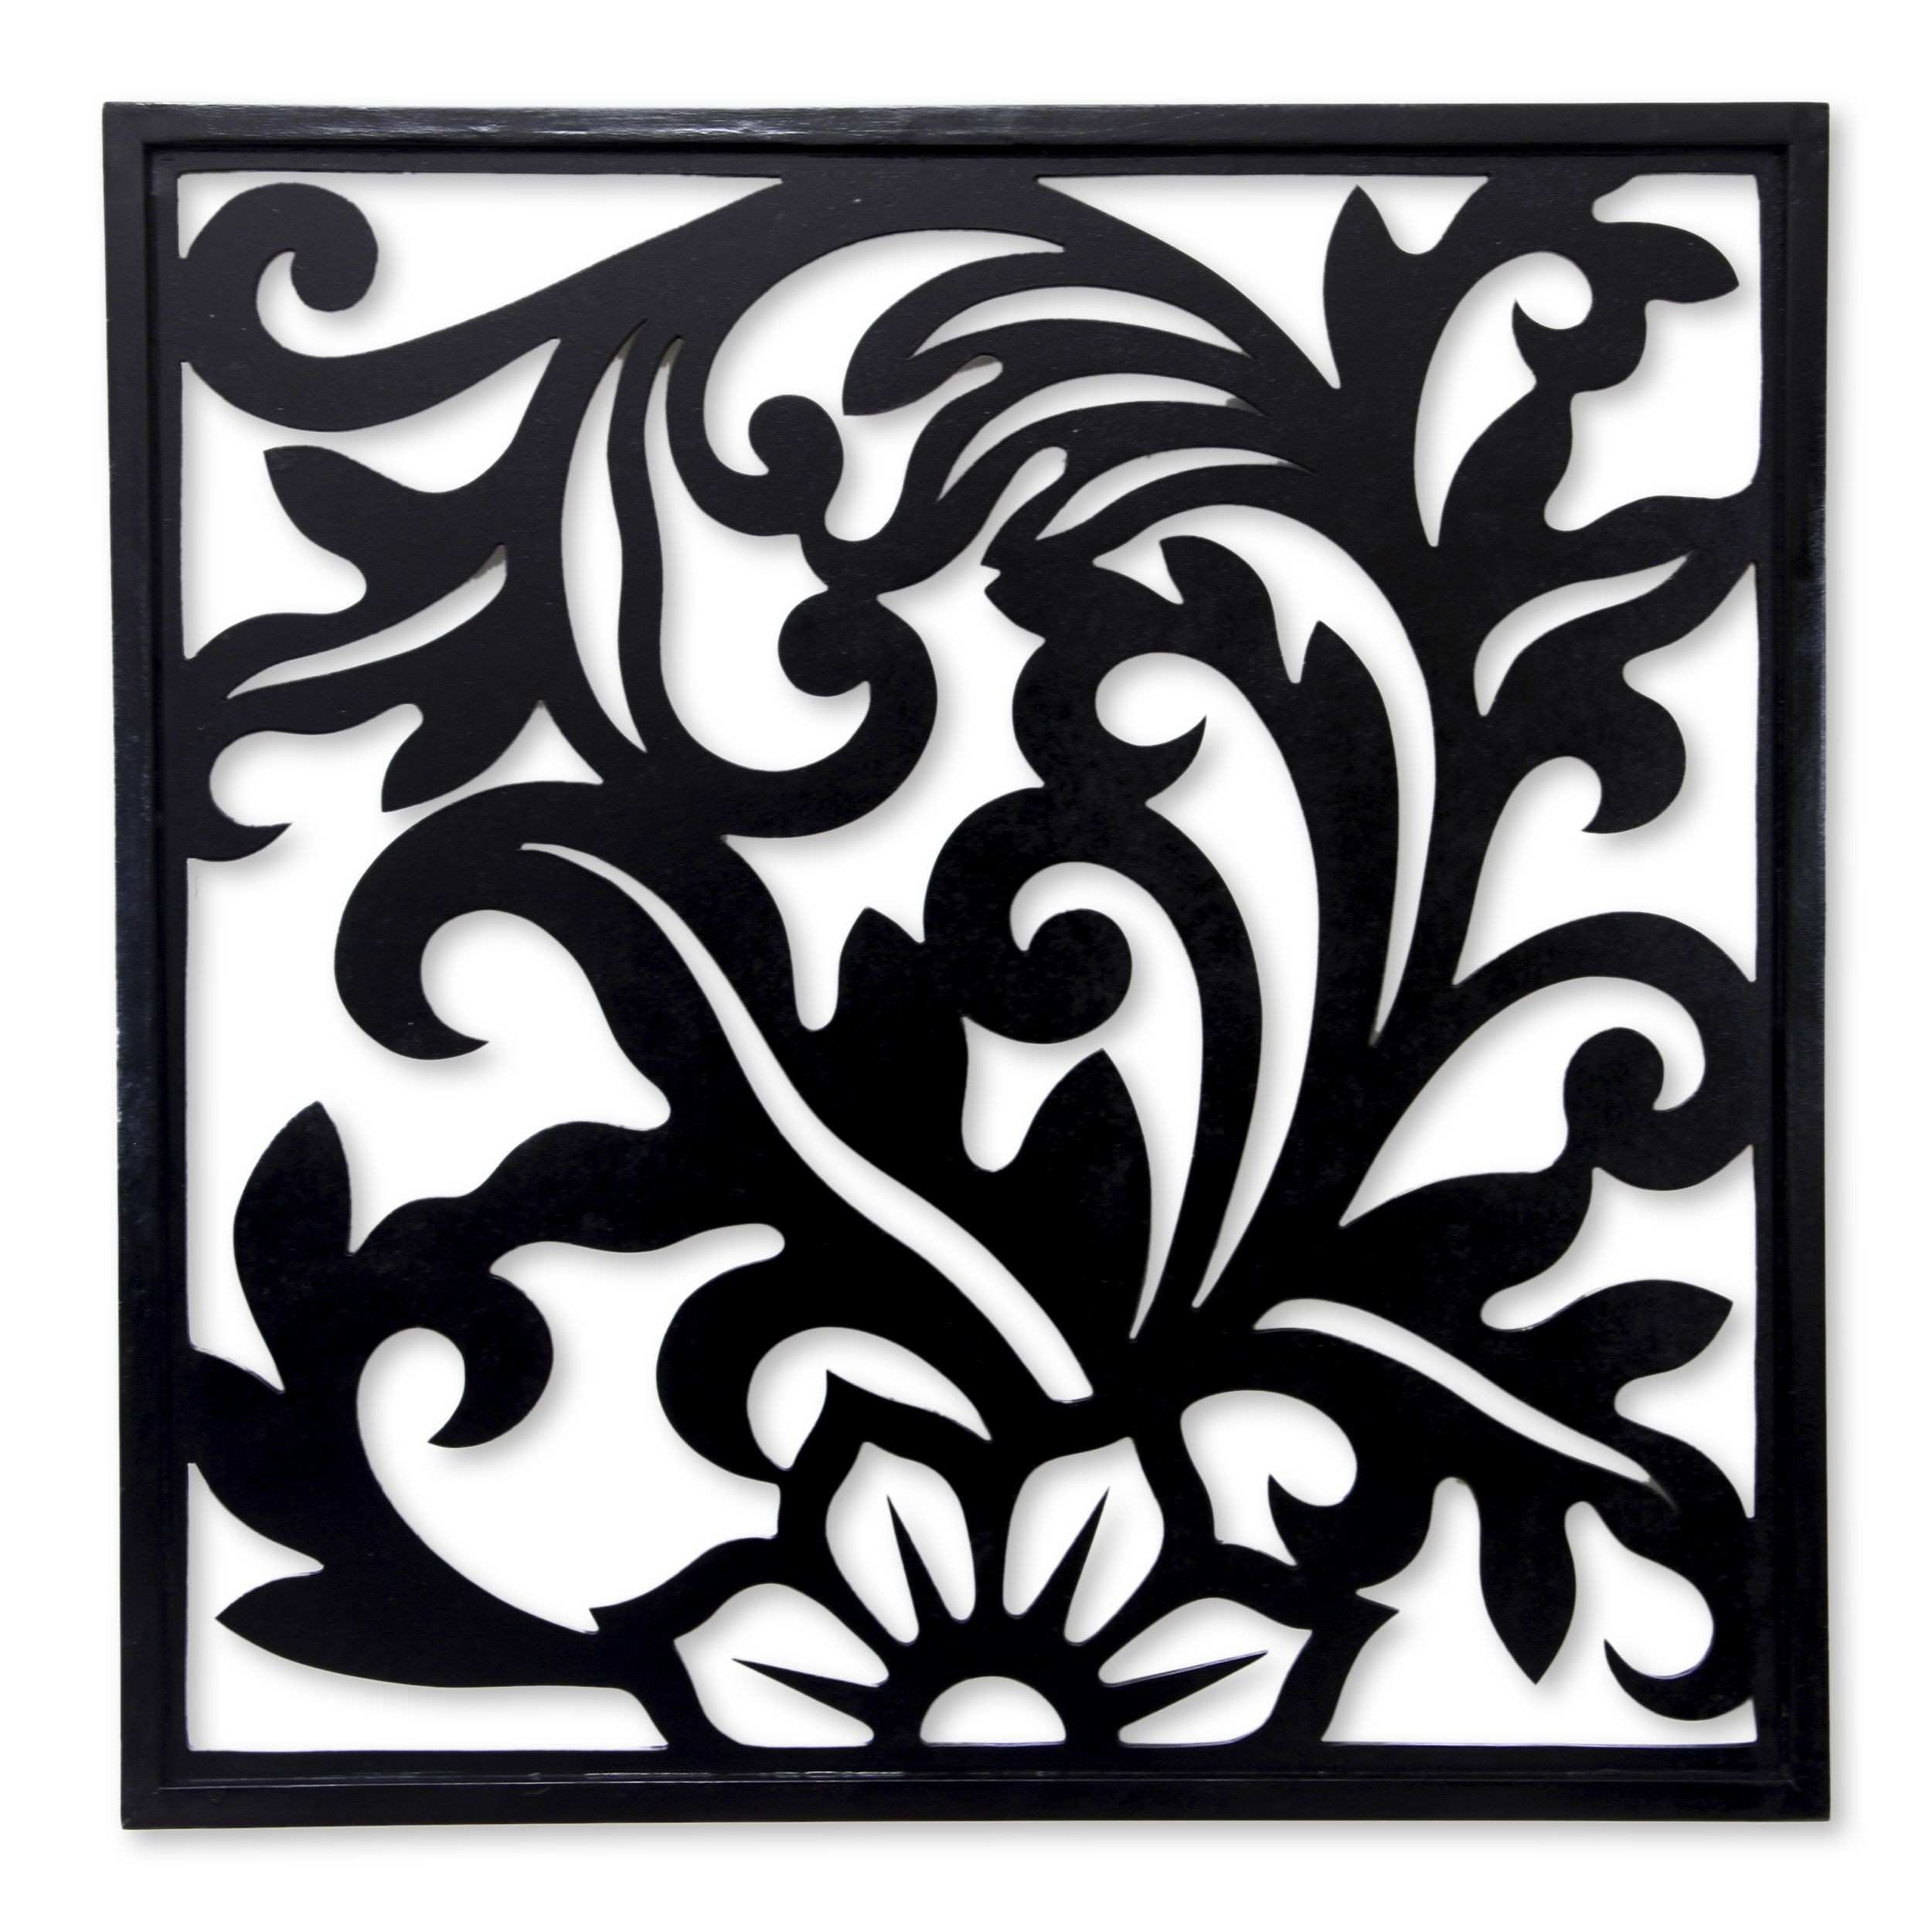 Balinese Floral Theme Wood Carving Wall Panel Silhouette Garden